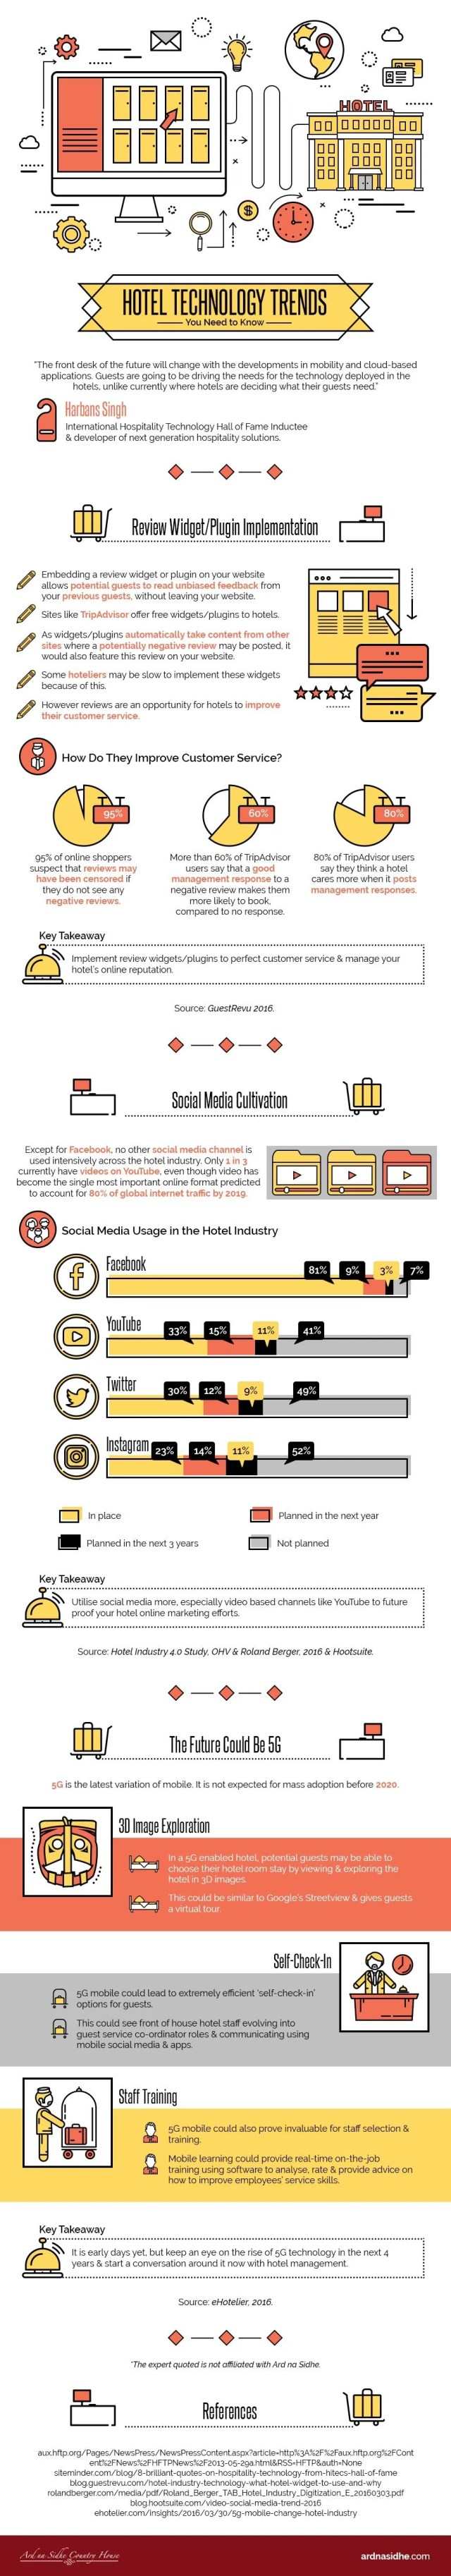 Hotel Technology Trends -Infographic